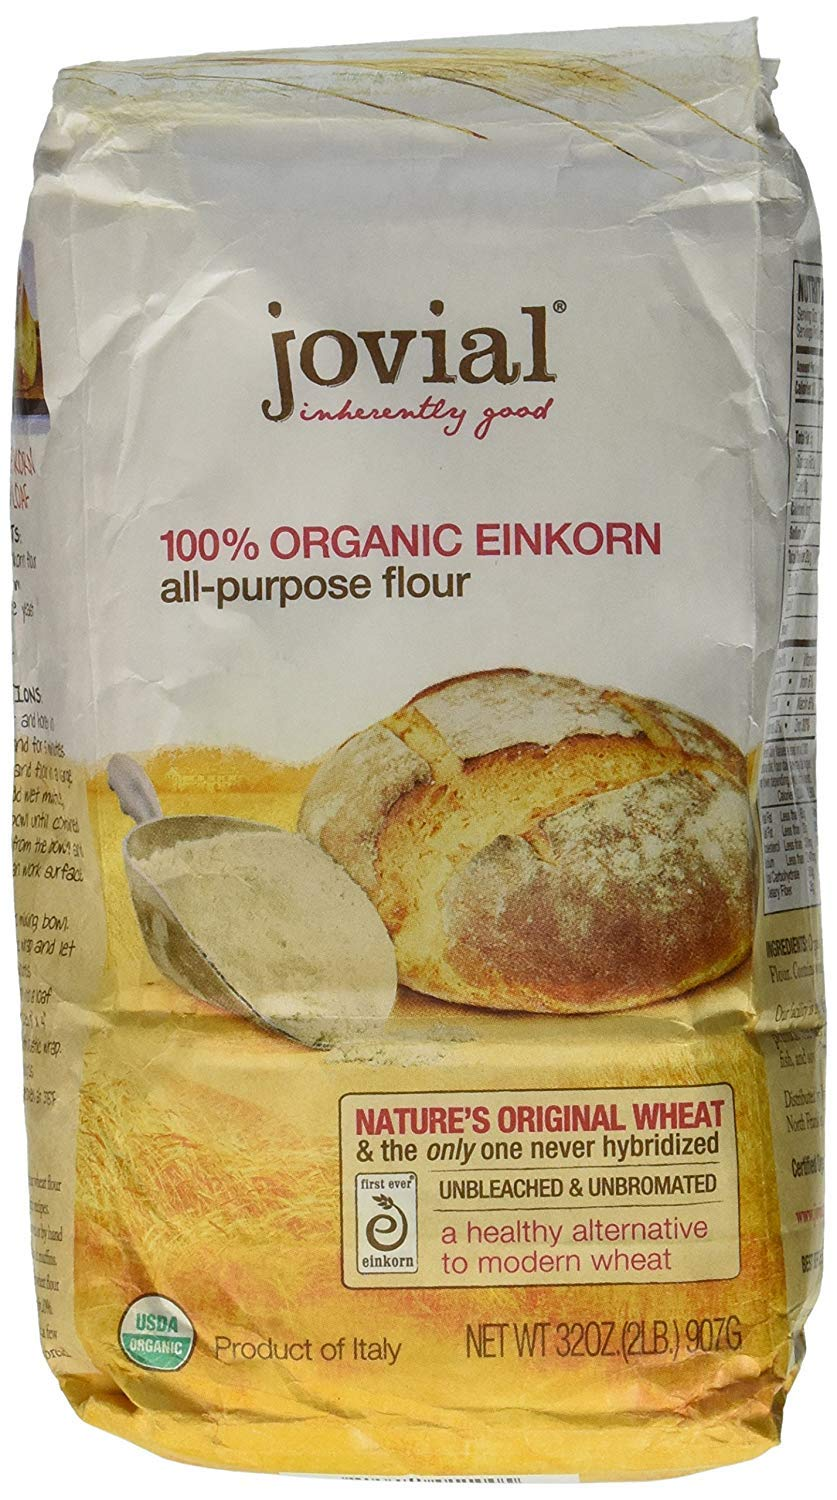 Jovial Organic Einkorn All Purpose Flour 32oz (Pack of 10) by Jovial